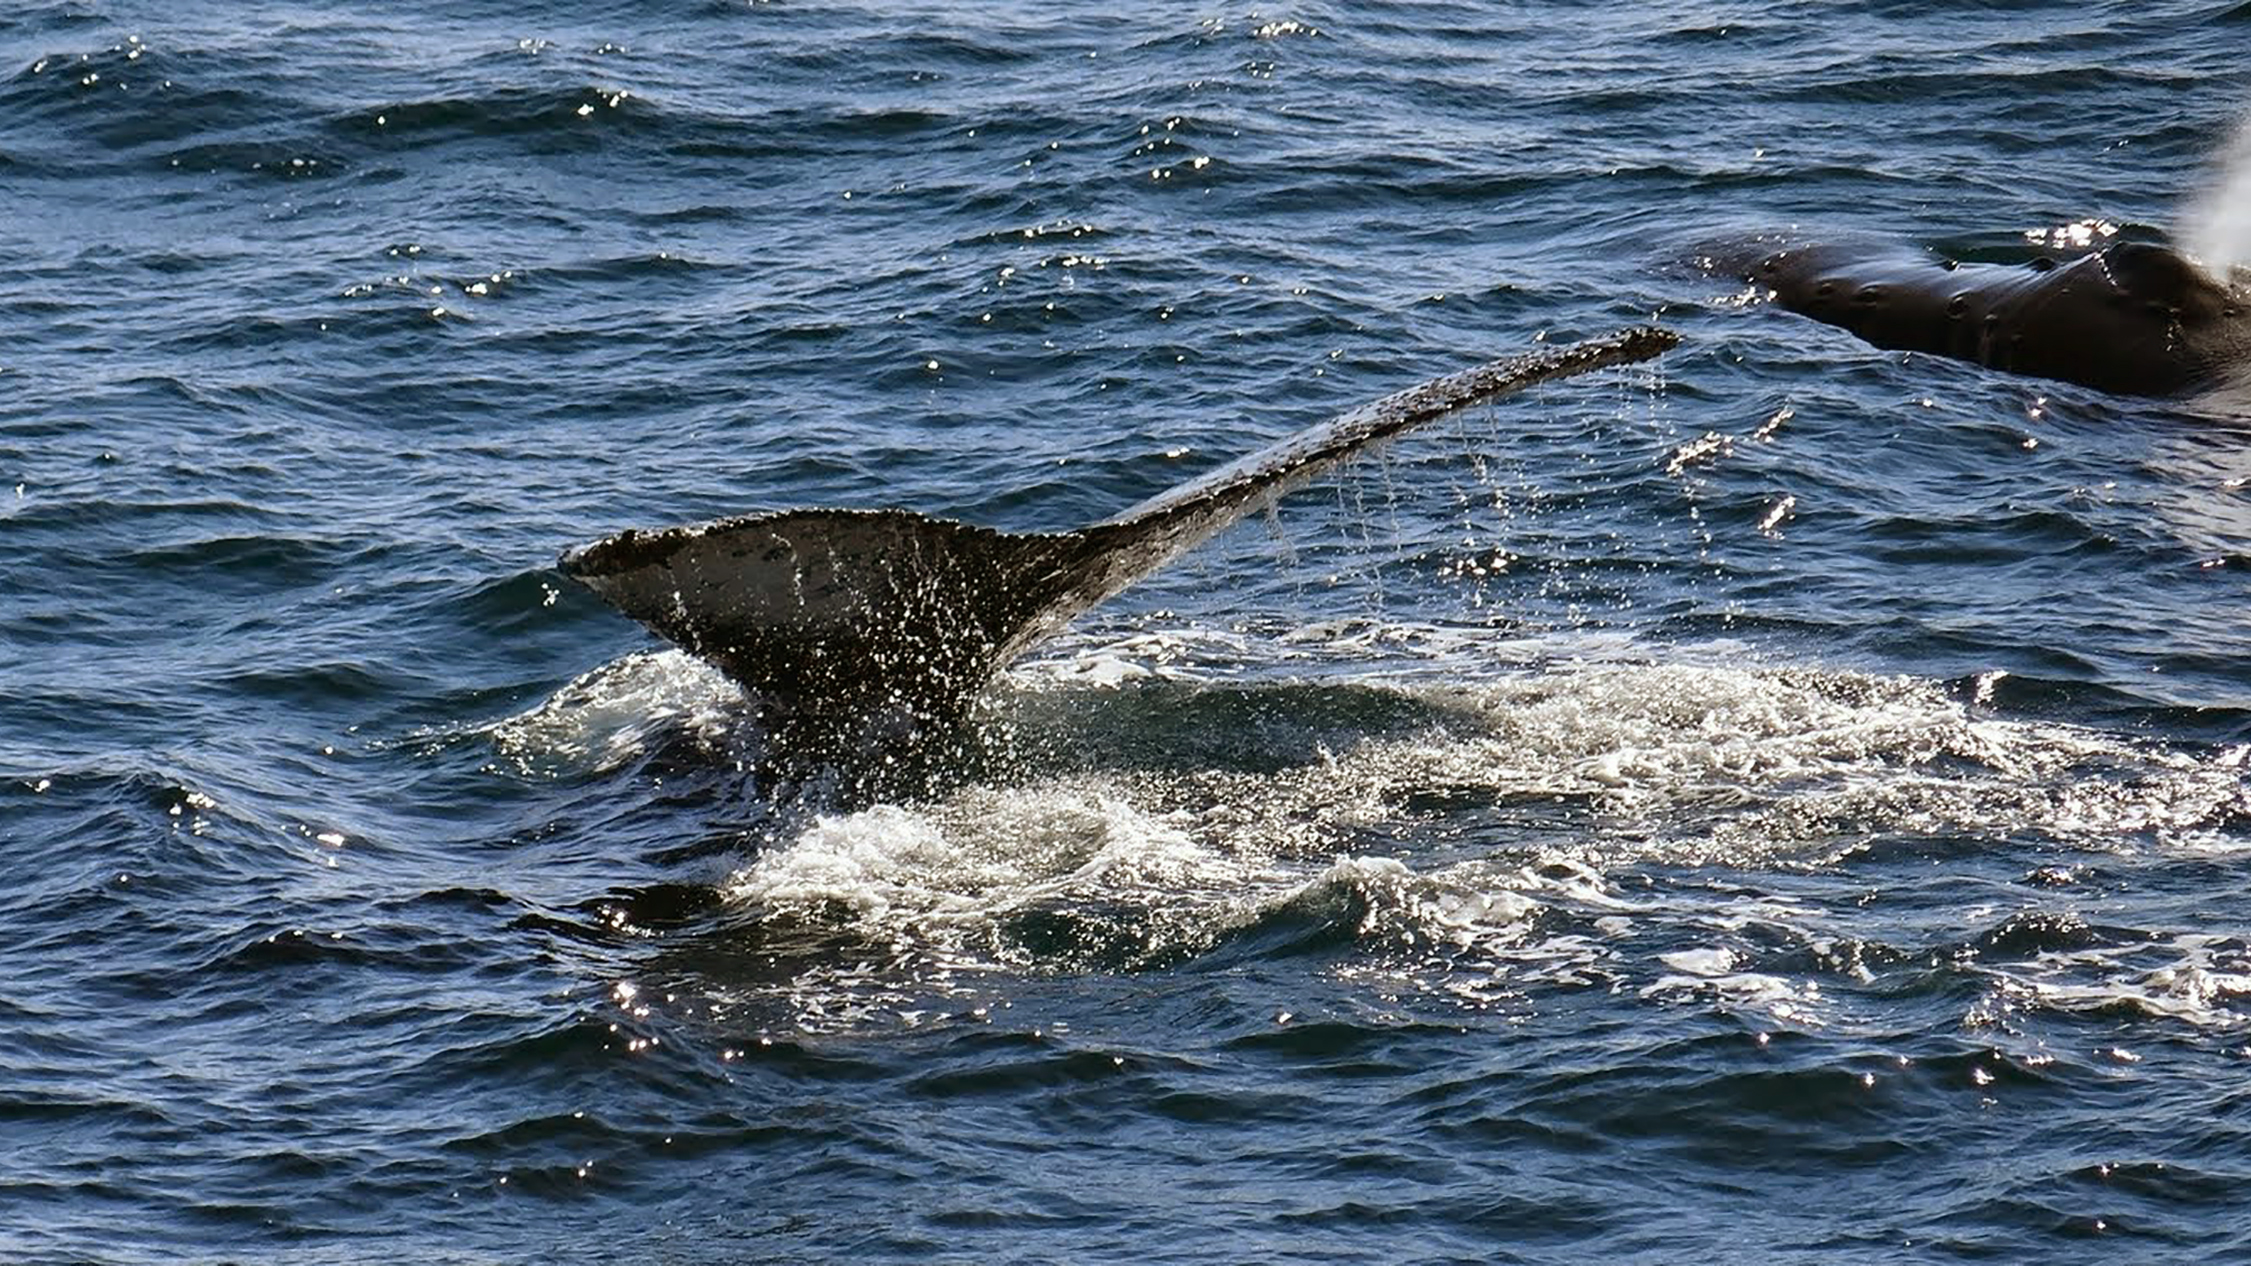 A mother humpback whale and her calf visited us and showed off in the waters on the edge of the English Strait.